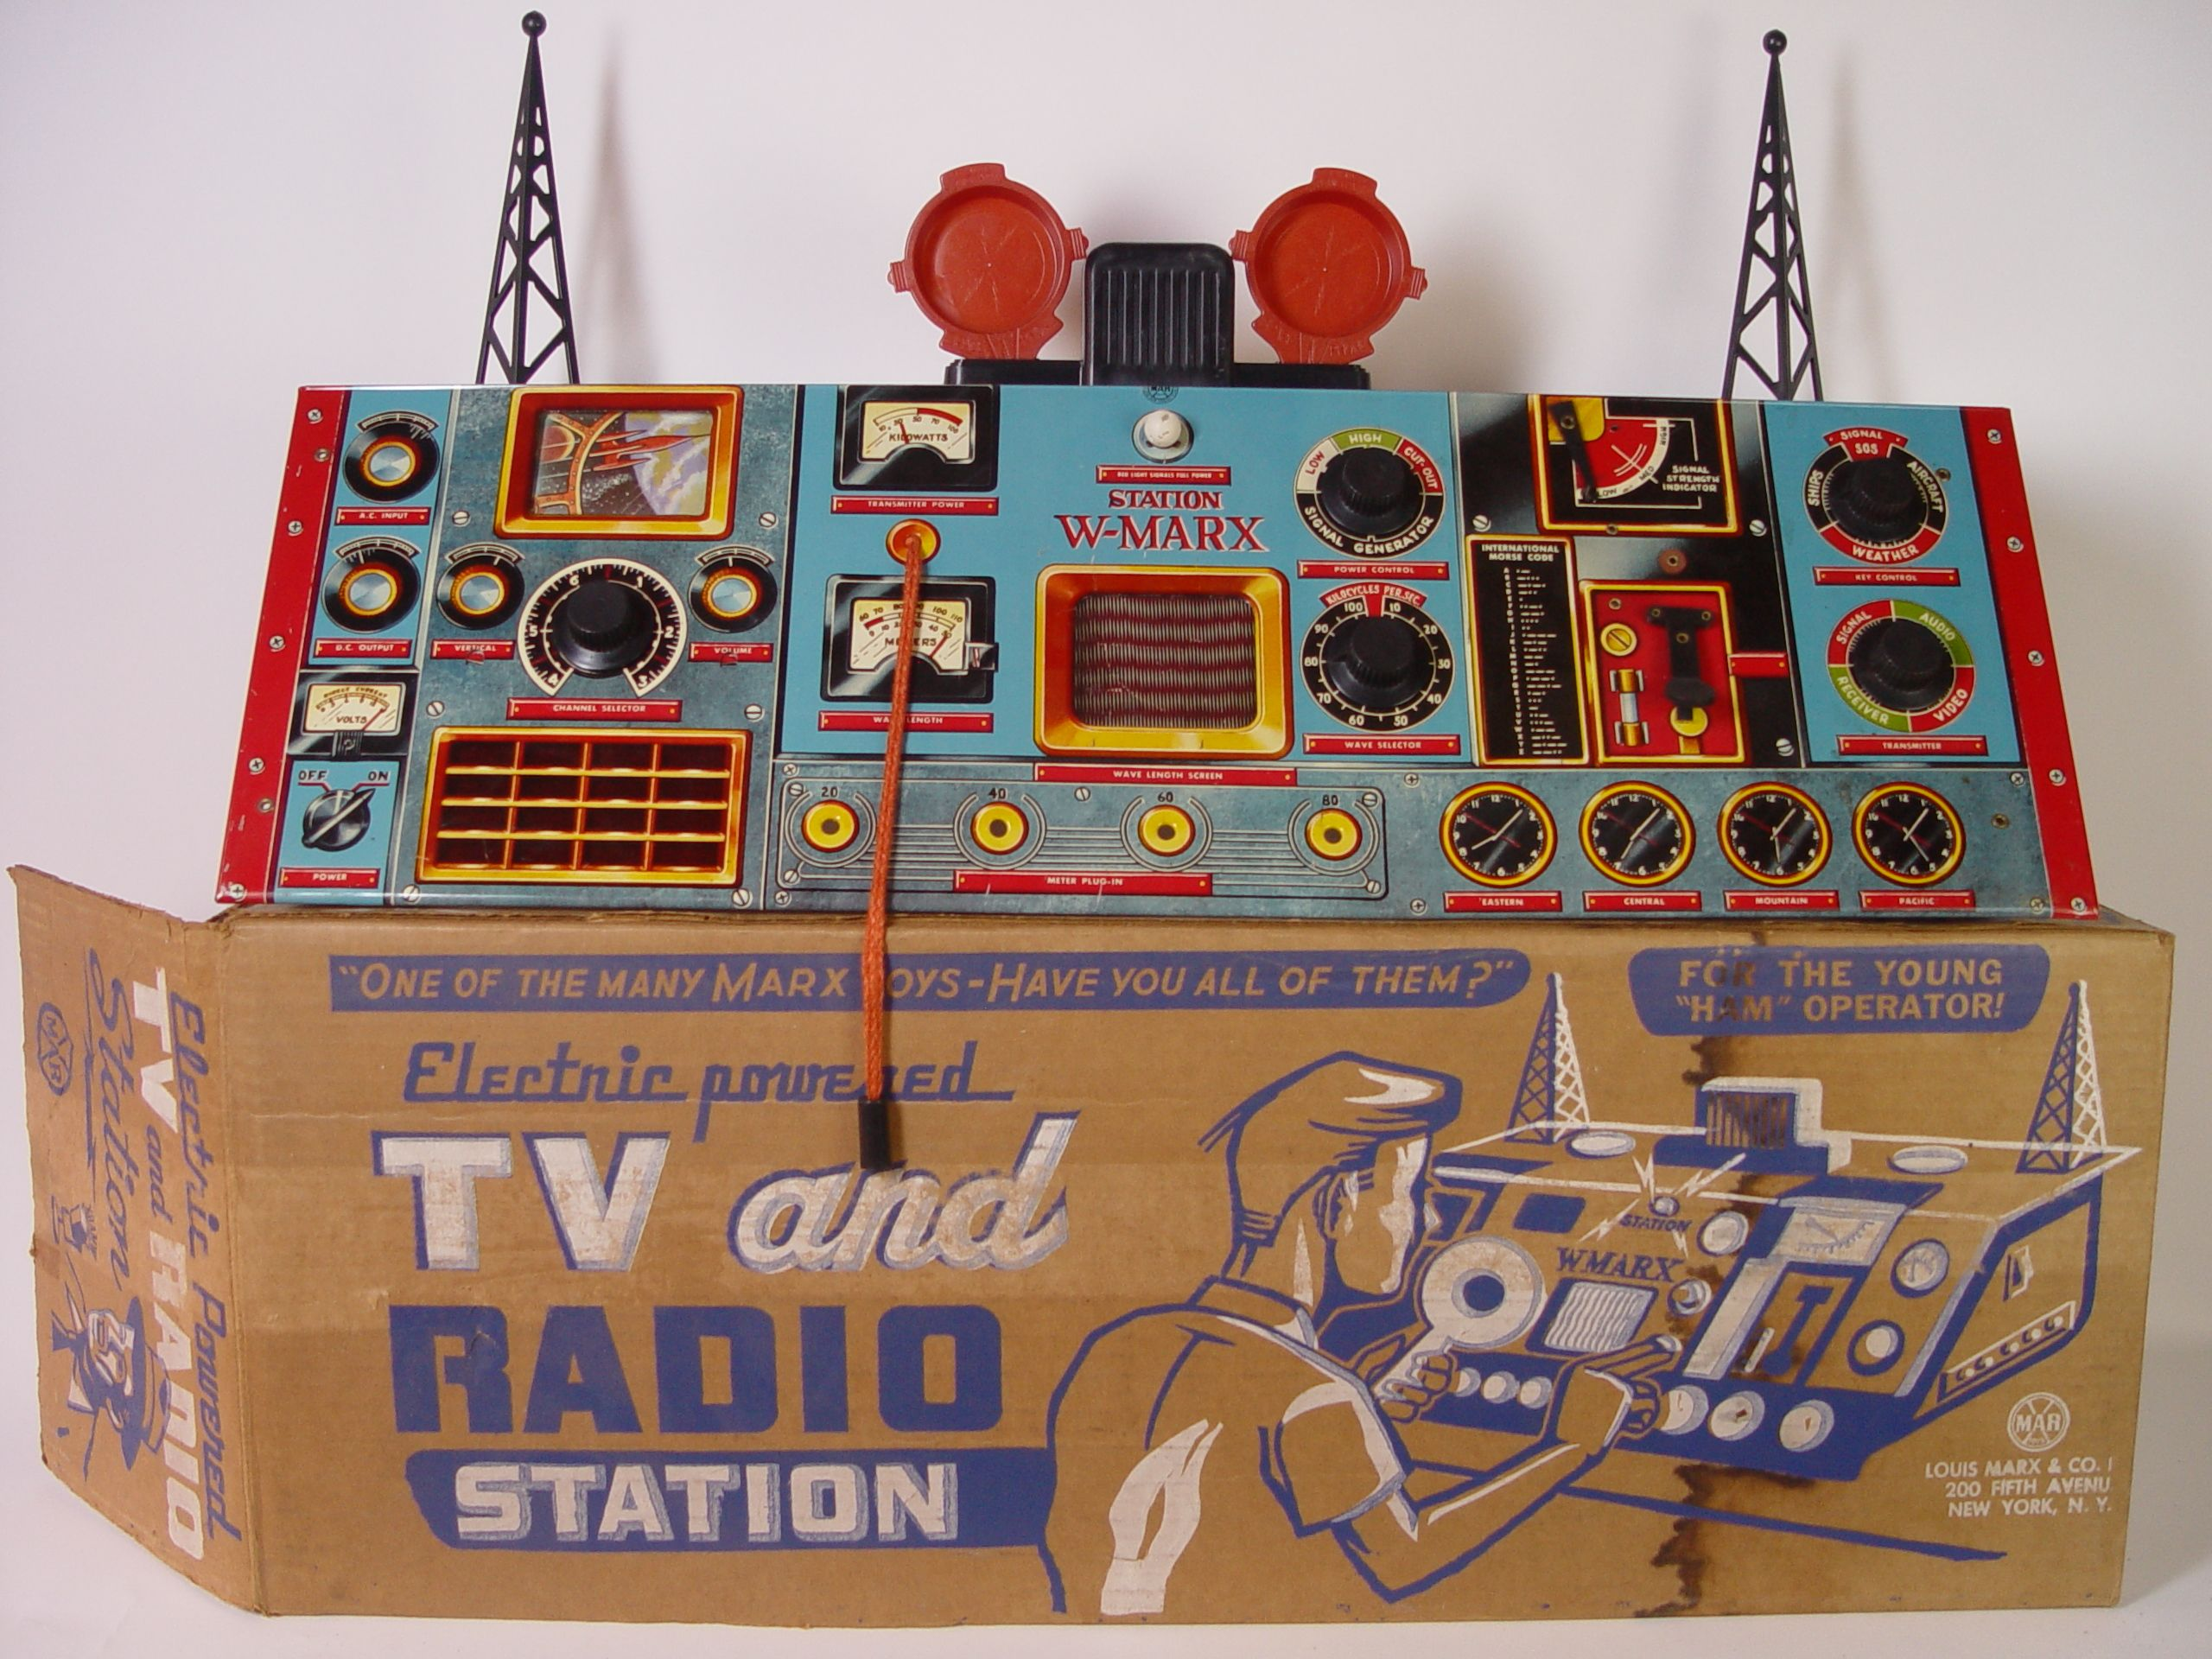 Tin Electric Powered TV and Radio Station by Marx